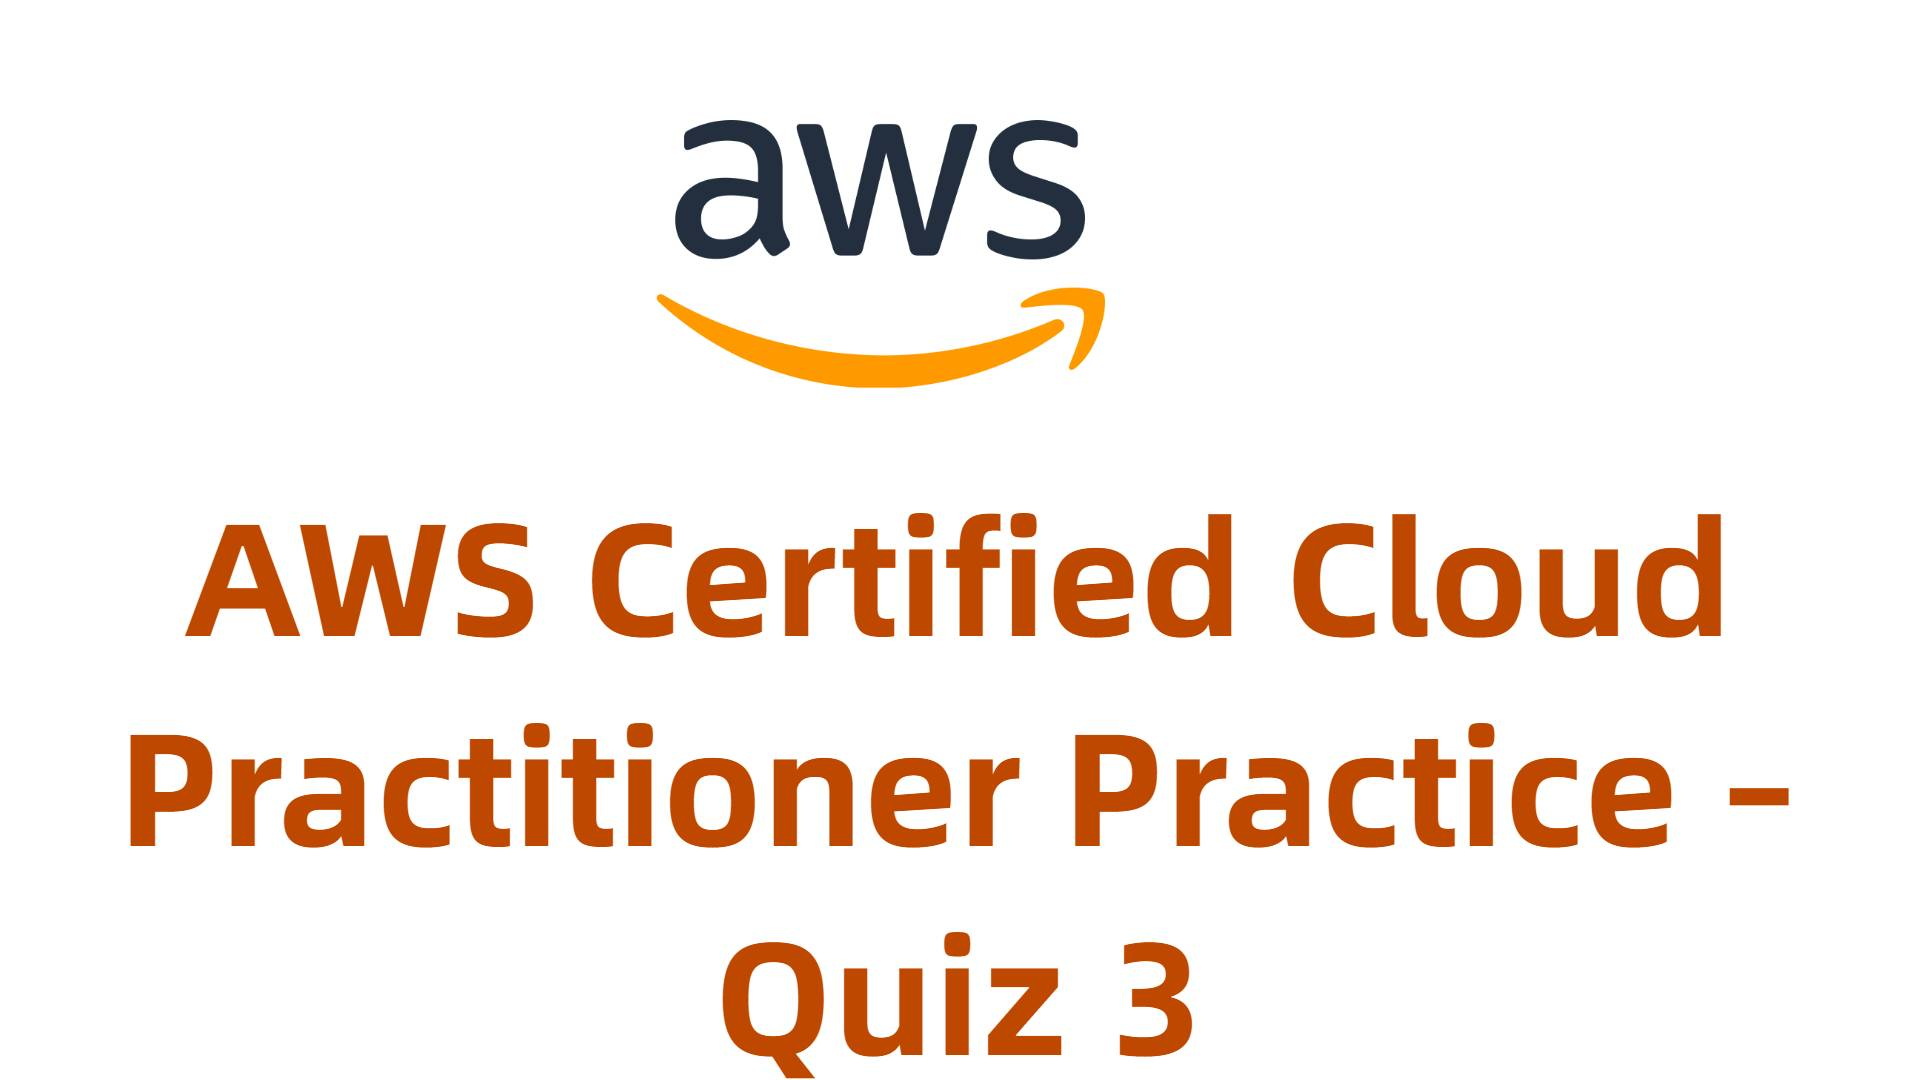 AWS Certified Cloud Practitioner Practice – Quiz 3